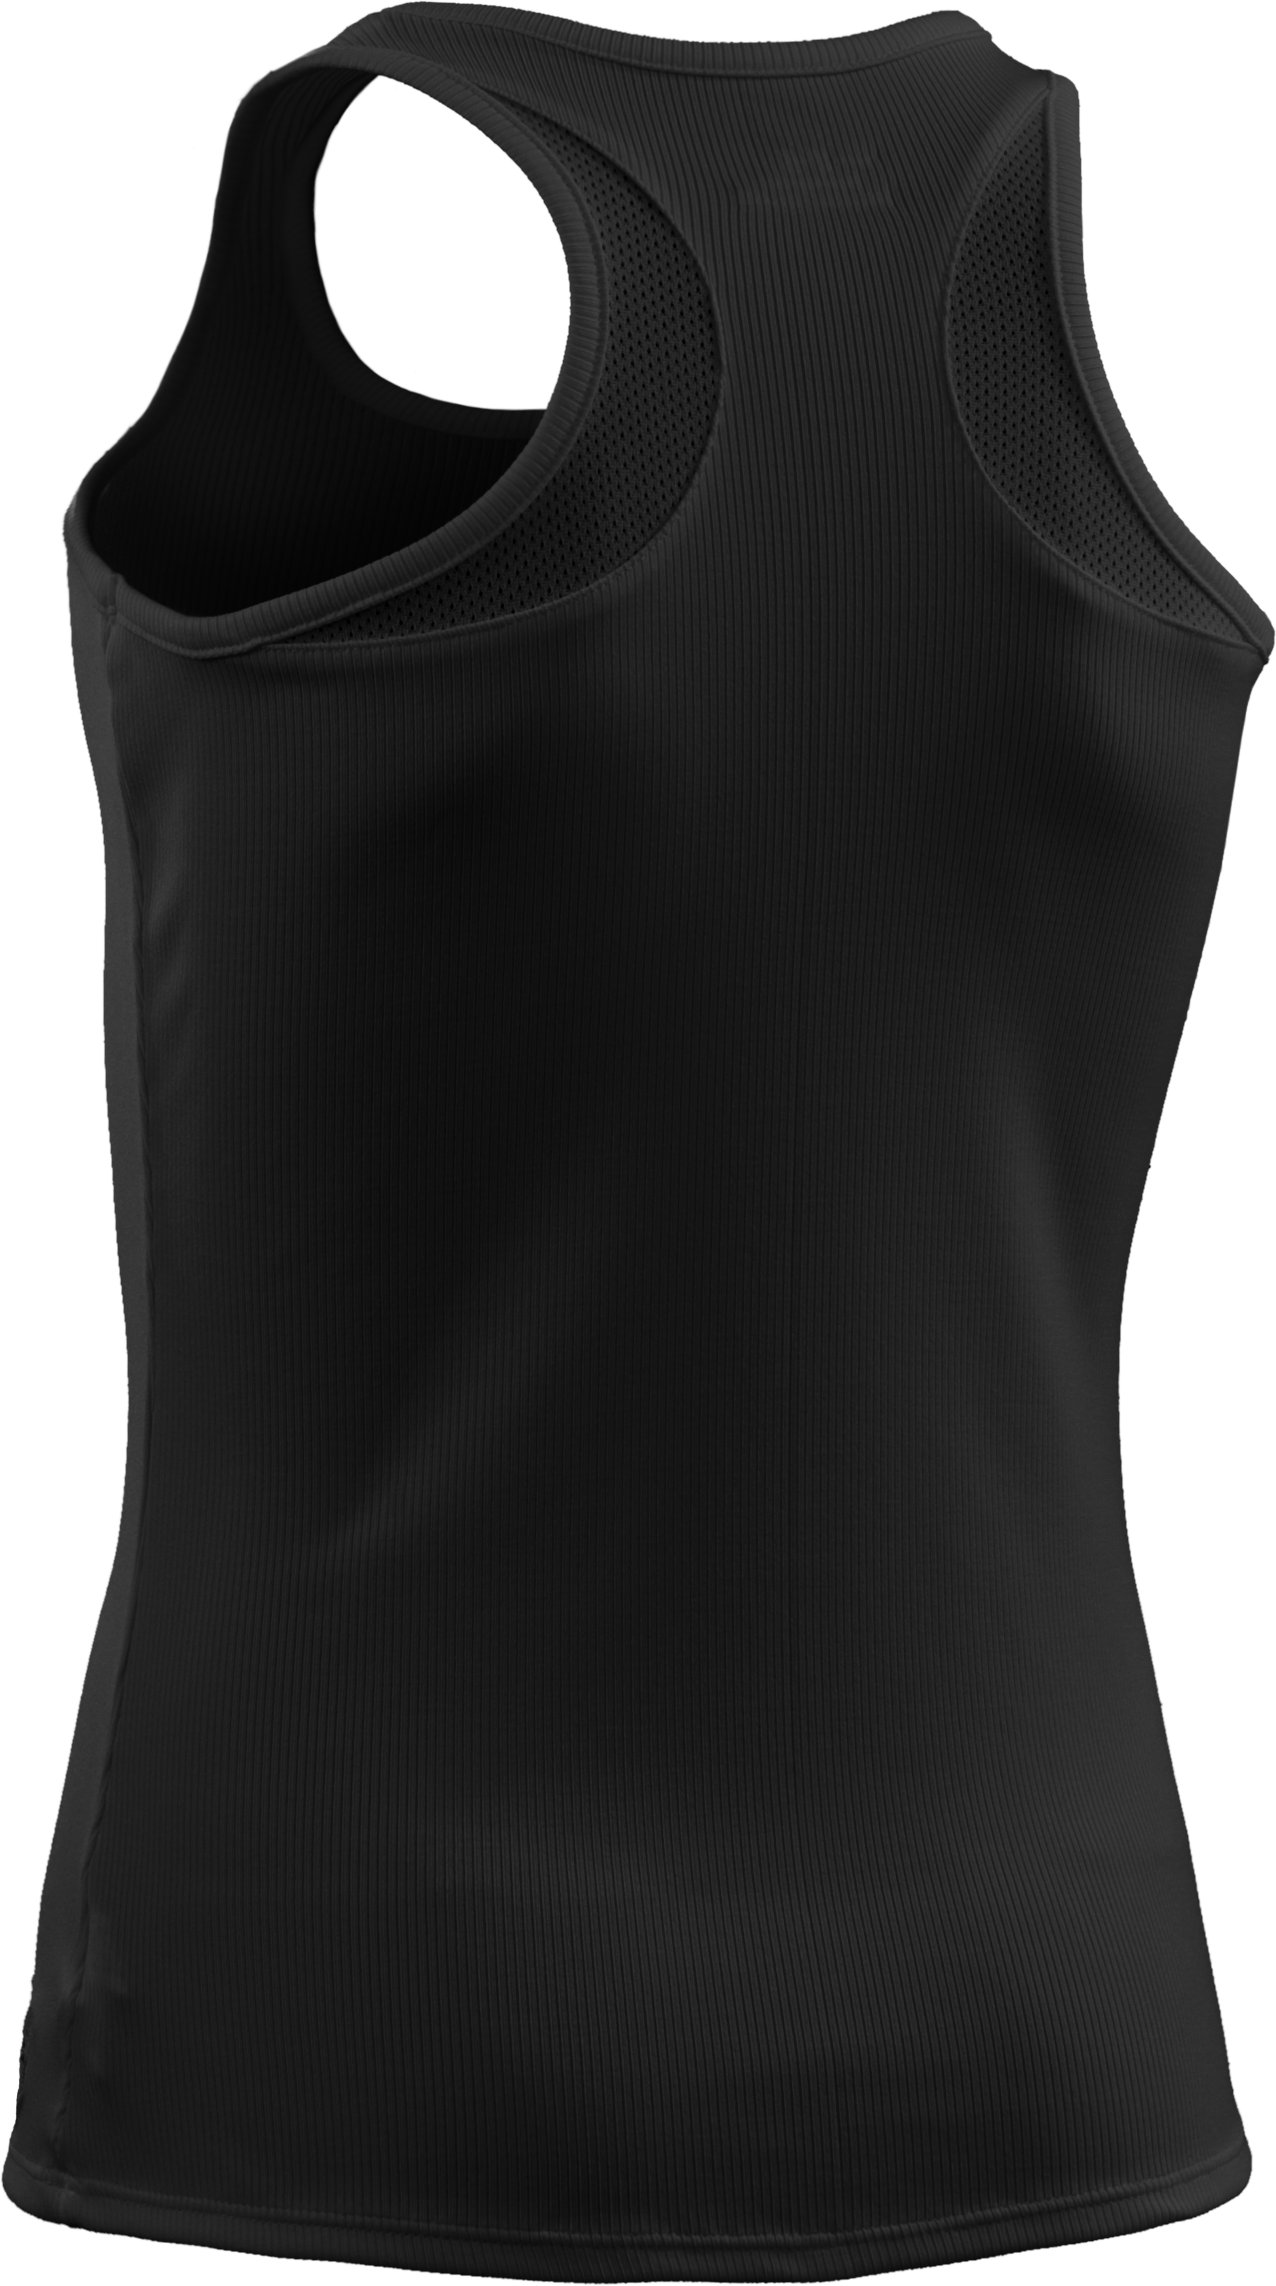 Girls' Victory Tank Top, Black